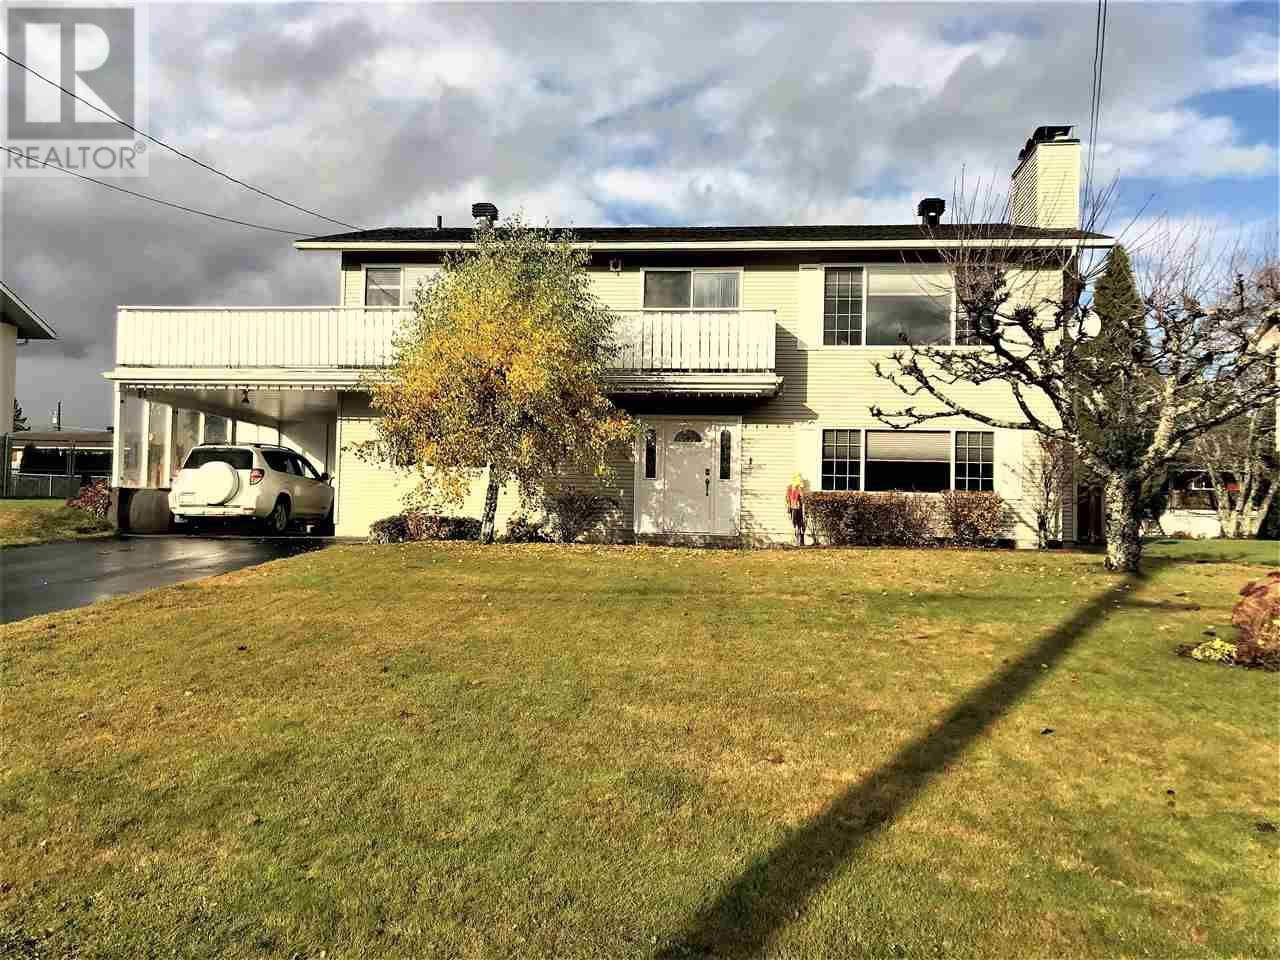 House for sale at 21 Whittlesey St Kitimat British Columbia - MLS: R2420070